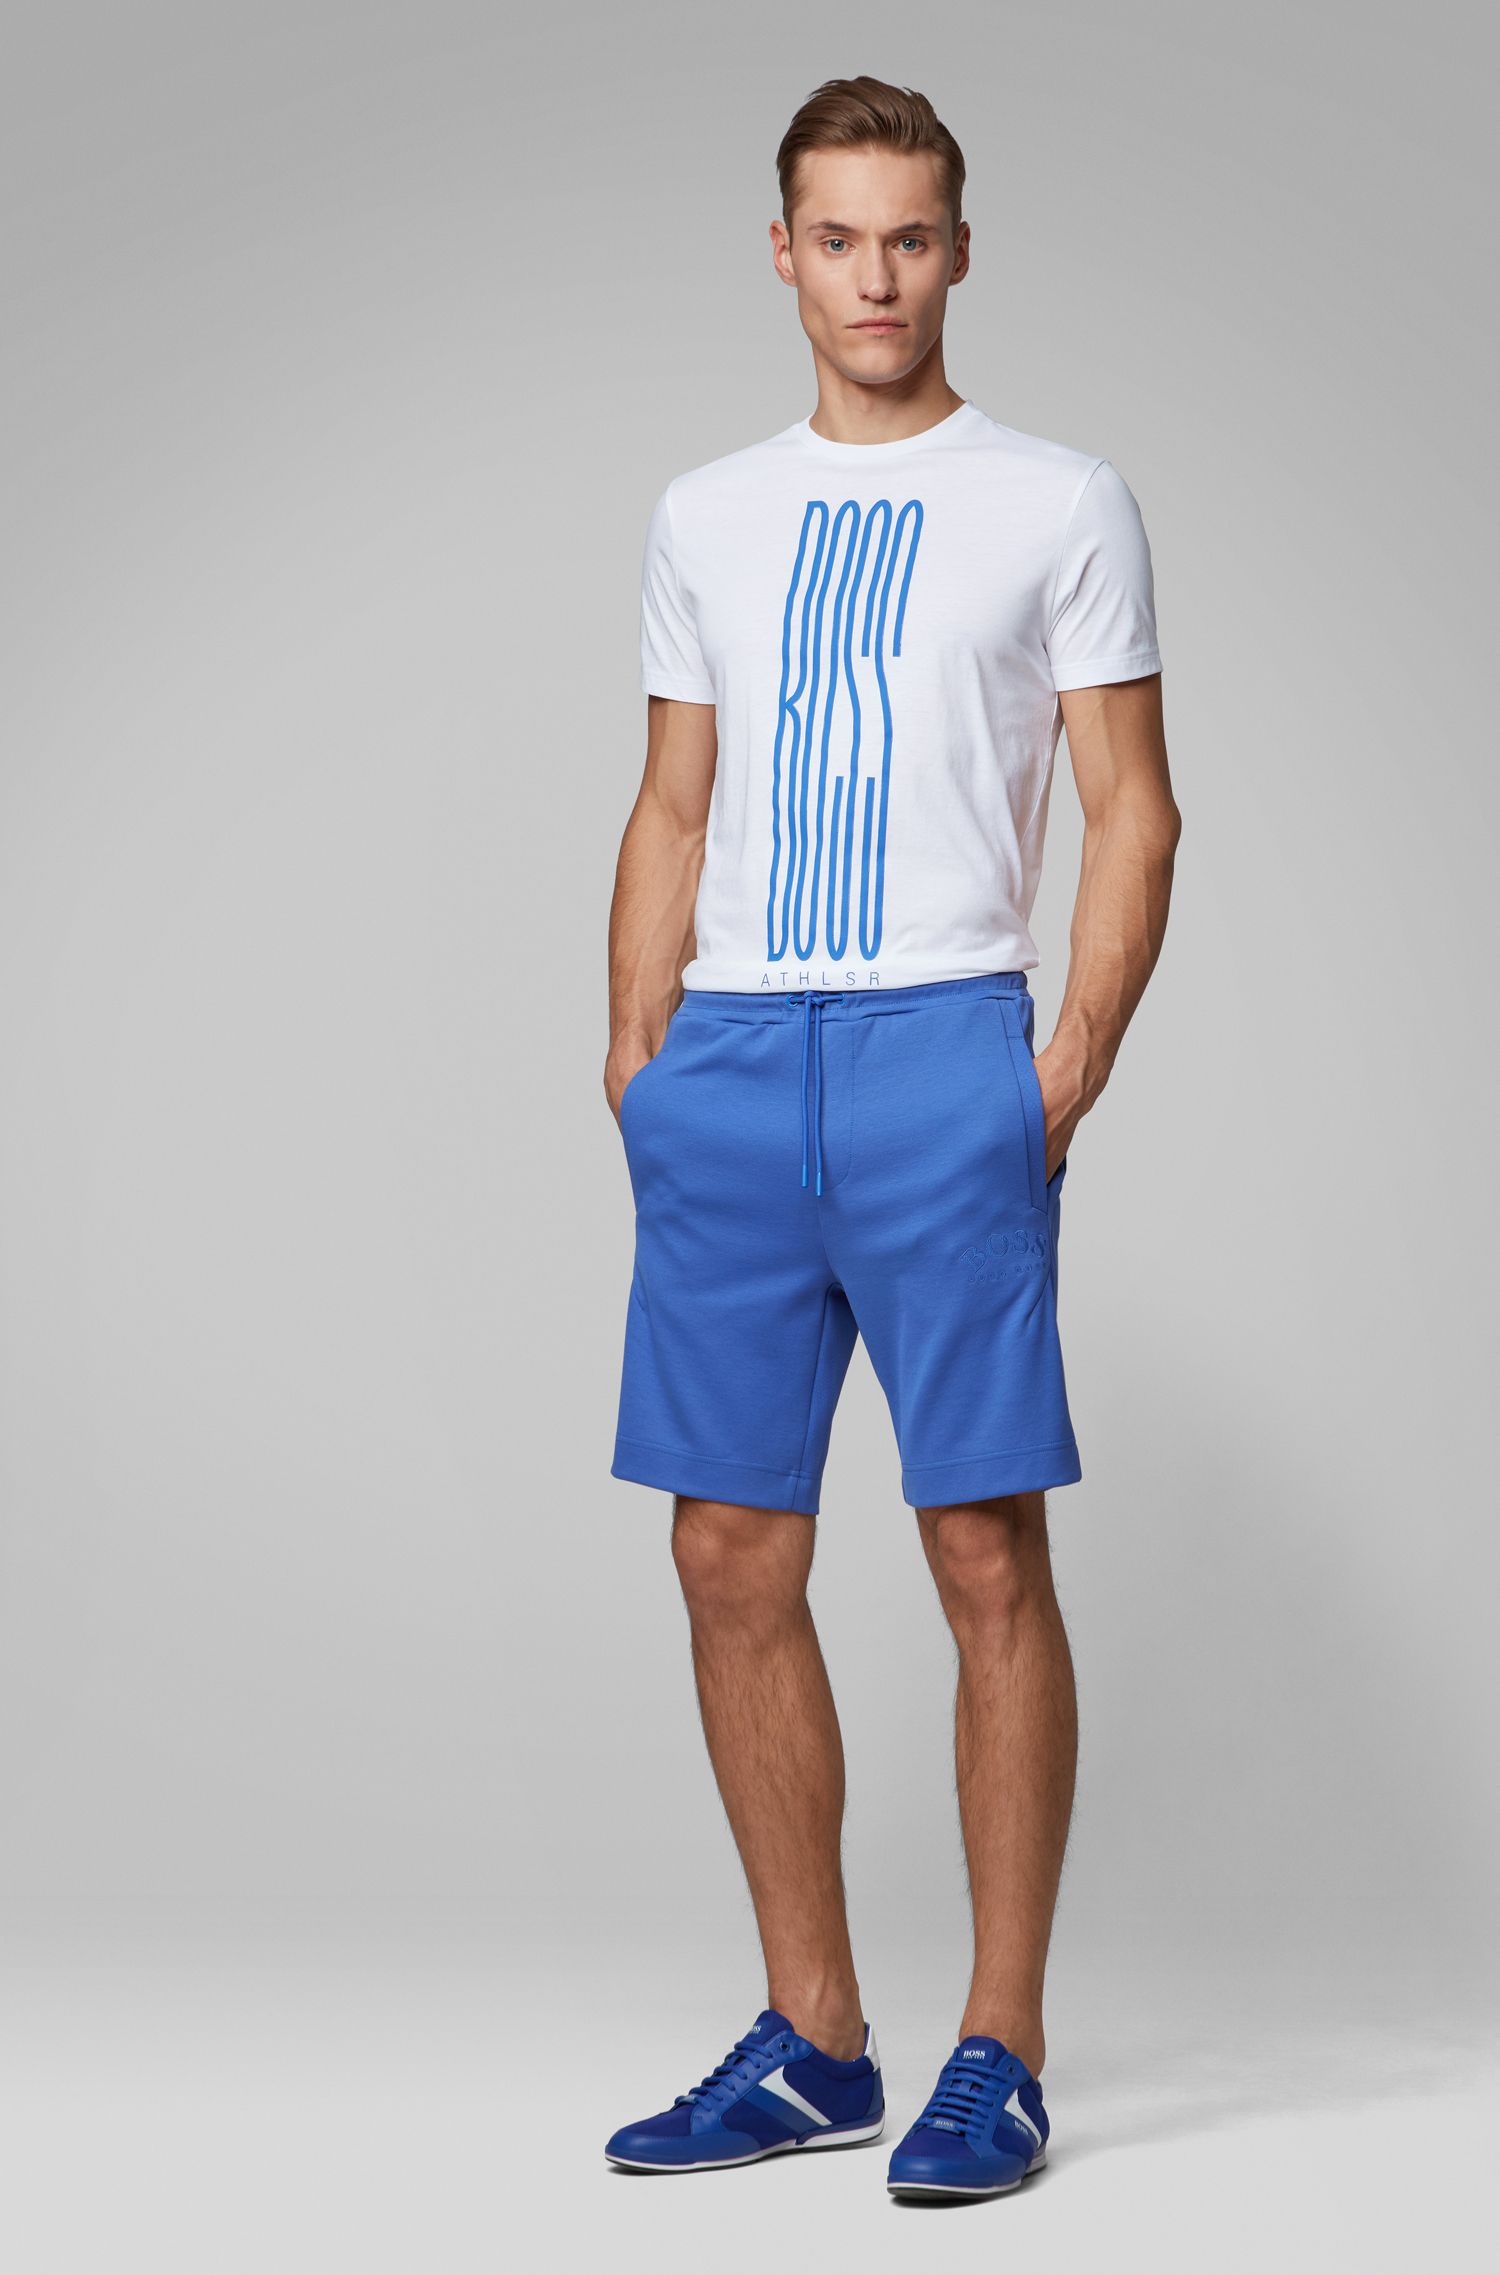 Slim-fit jogging shorts in contrast fabrics with curved logo, Blue